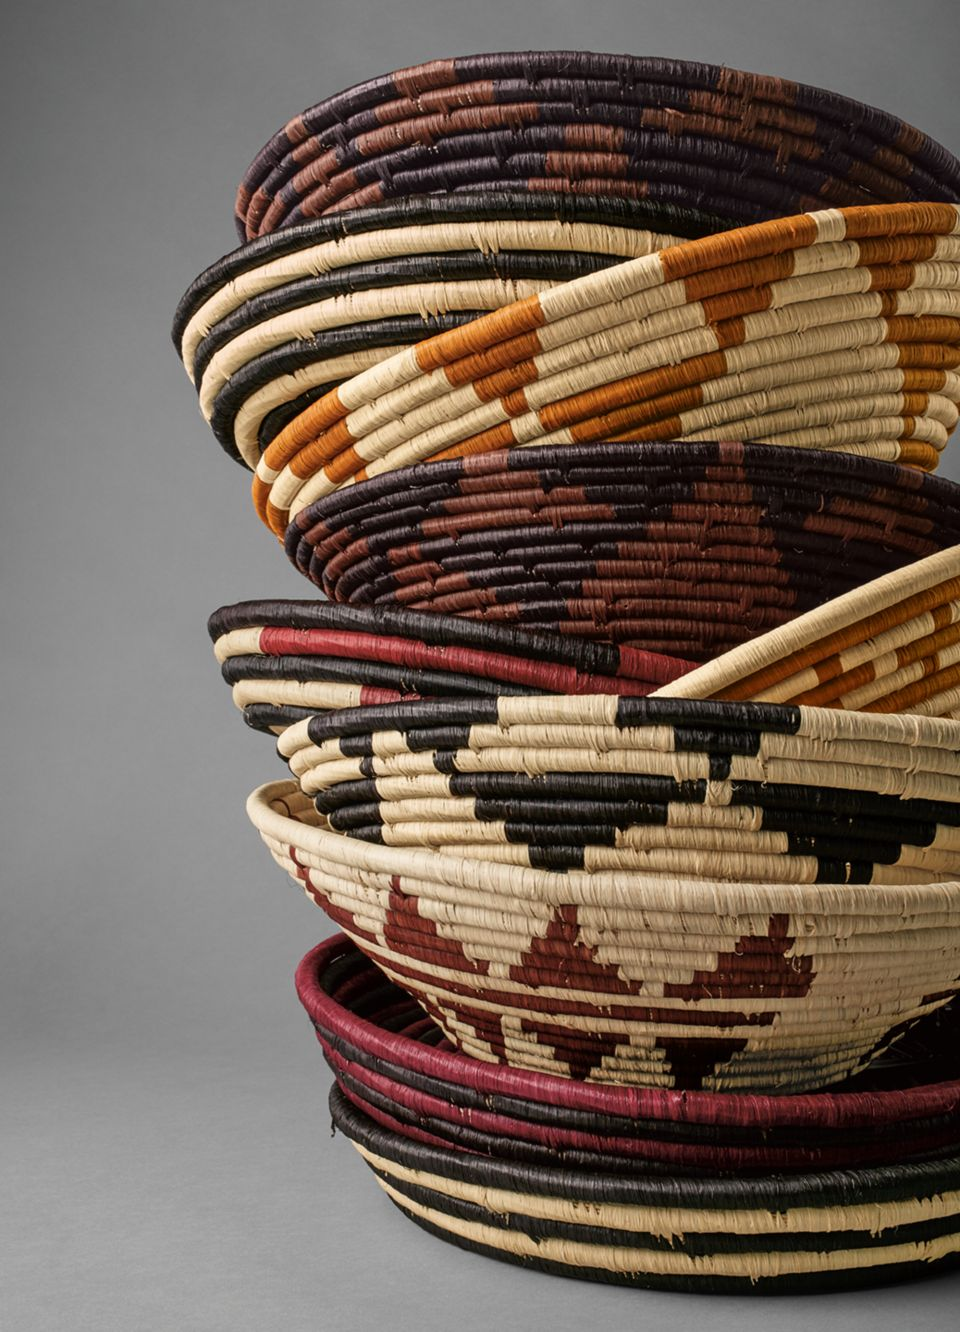 Detail of decorative handmade baskets